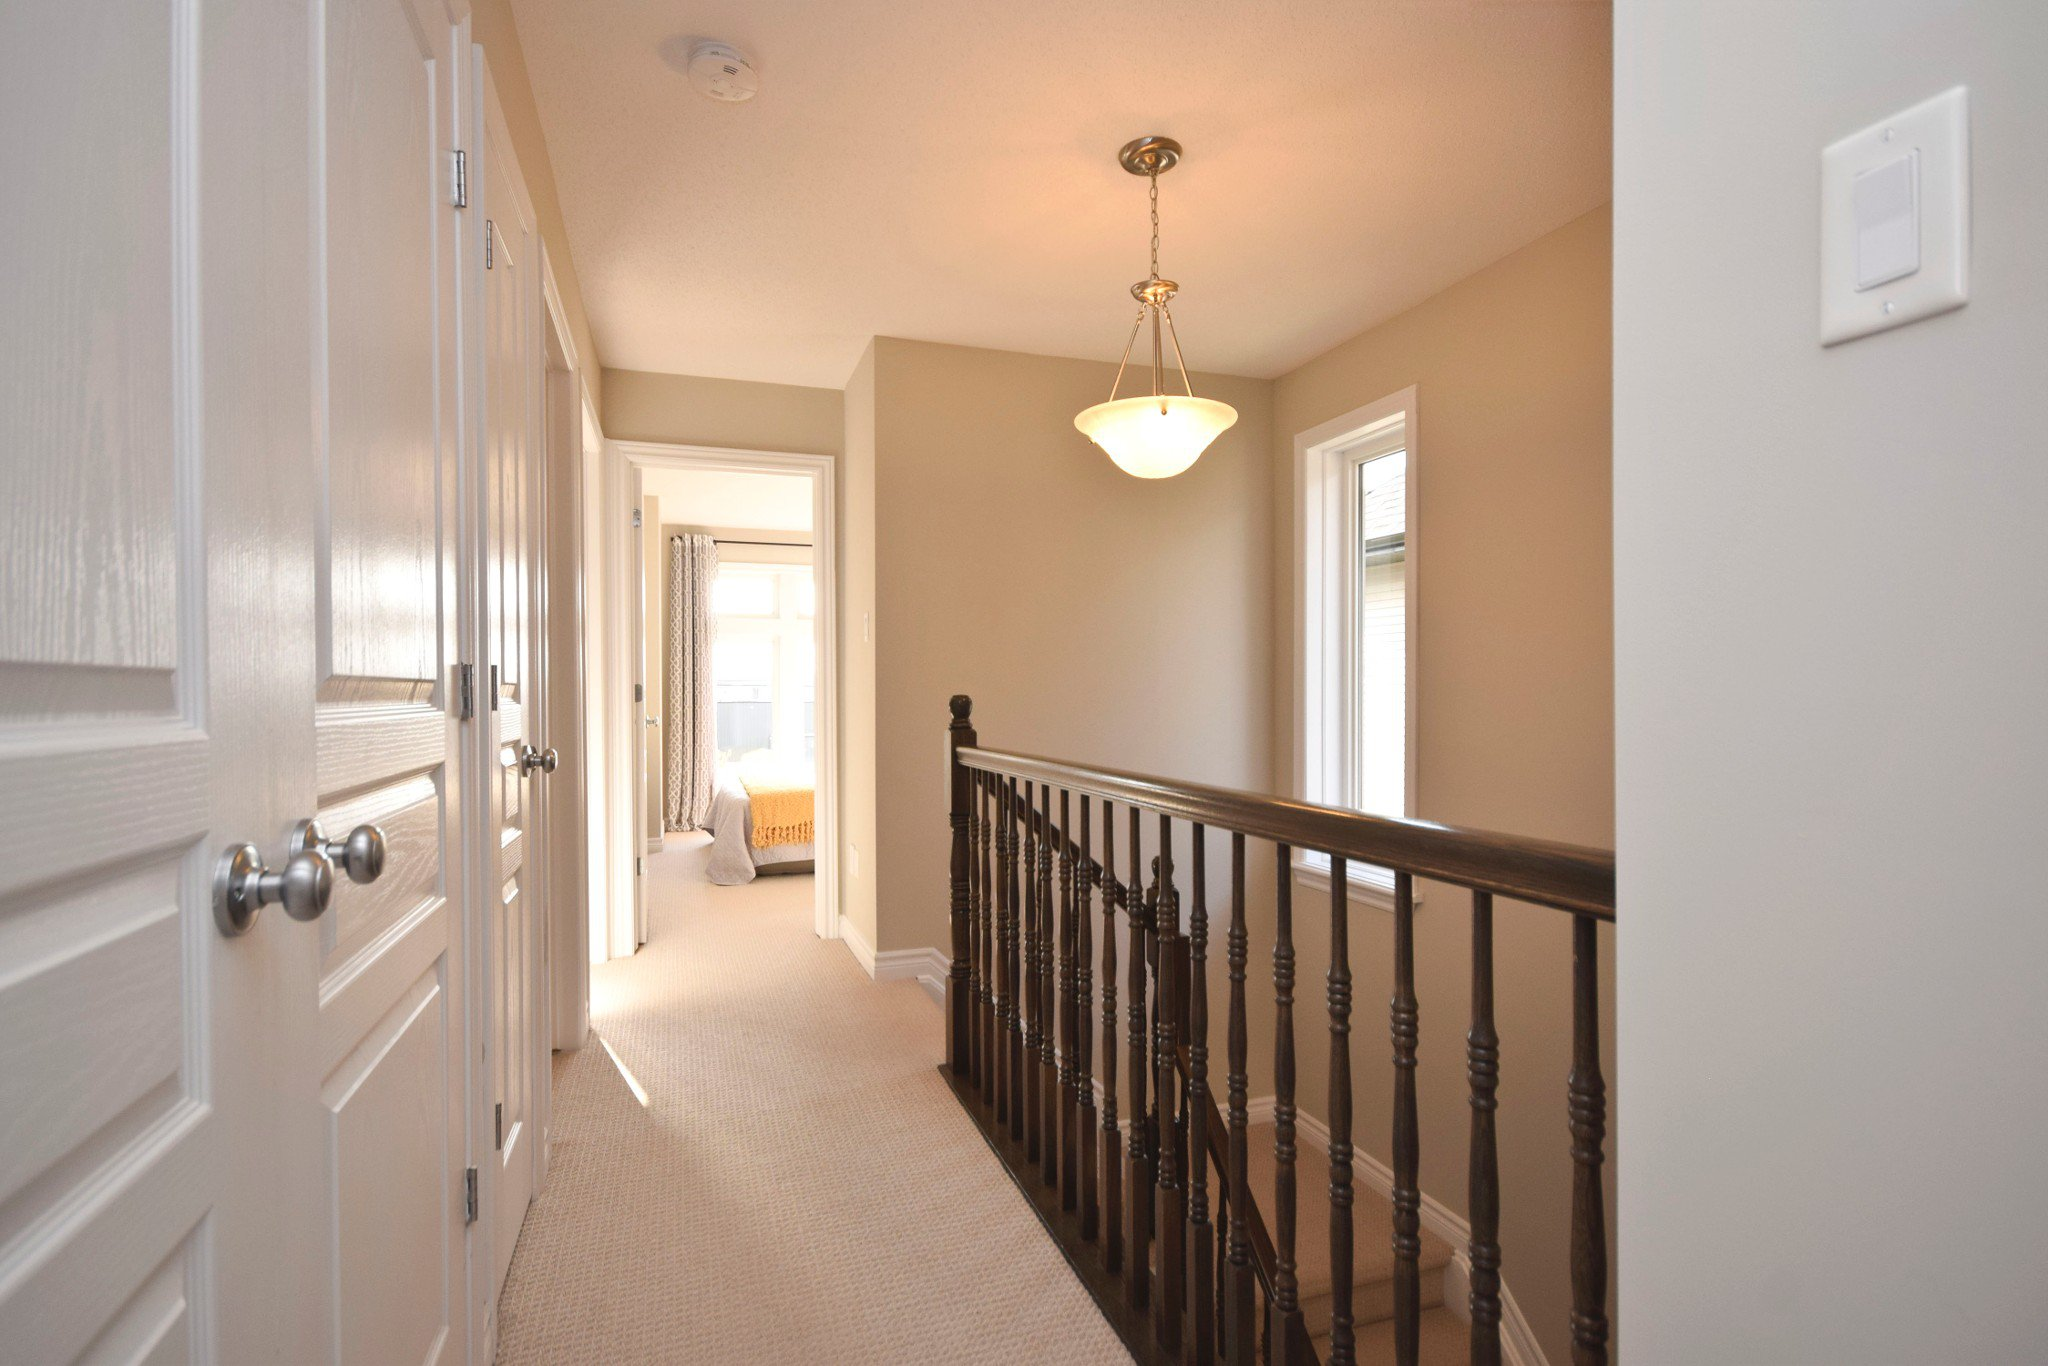 Photo 35: Photos: 131 Popplewell Crescent in Ottawa: Cedargrove / Fraserdale House for sale (Barrhaven)  : MLS®# 1130335